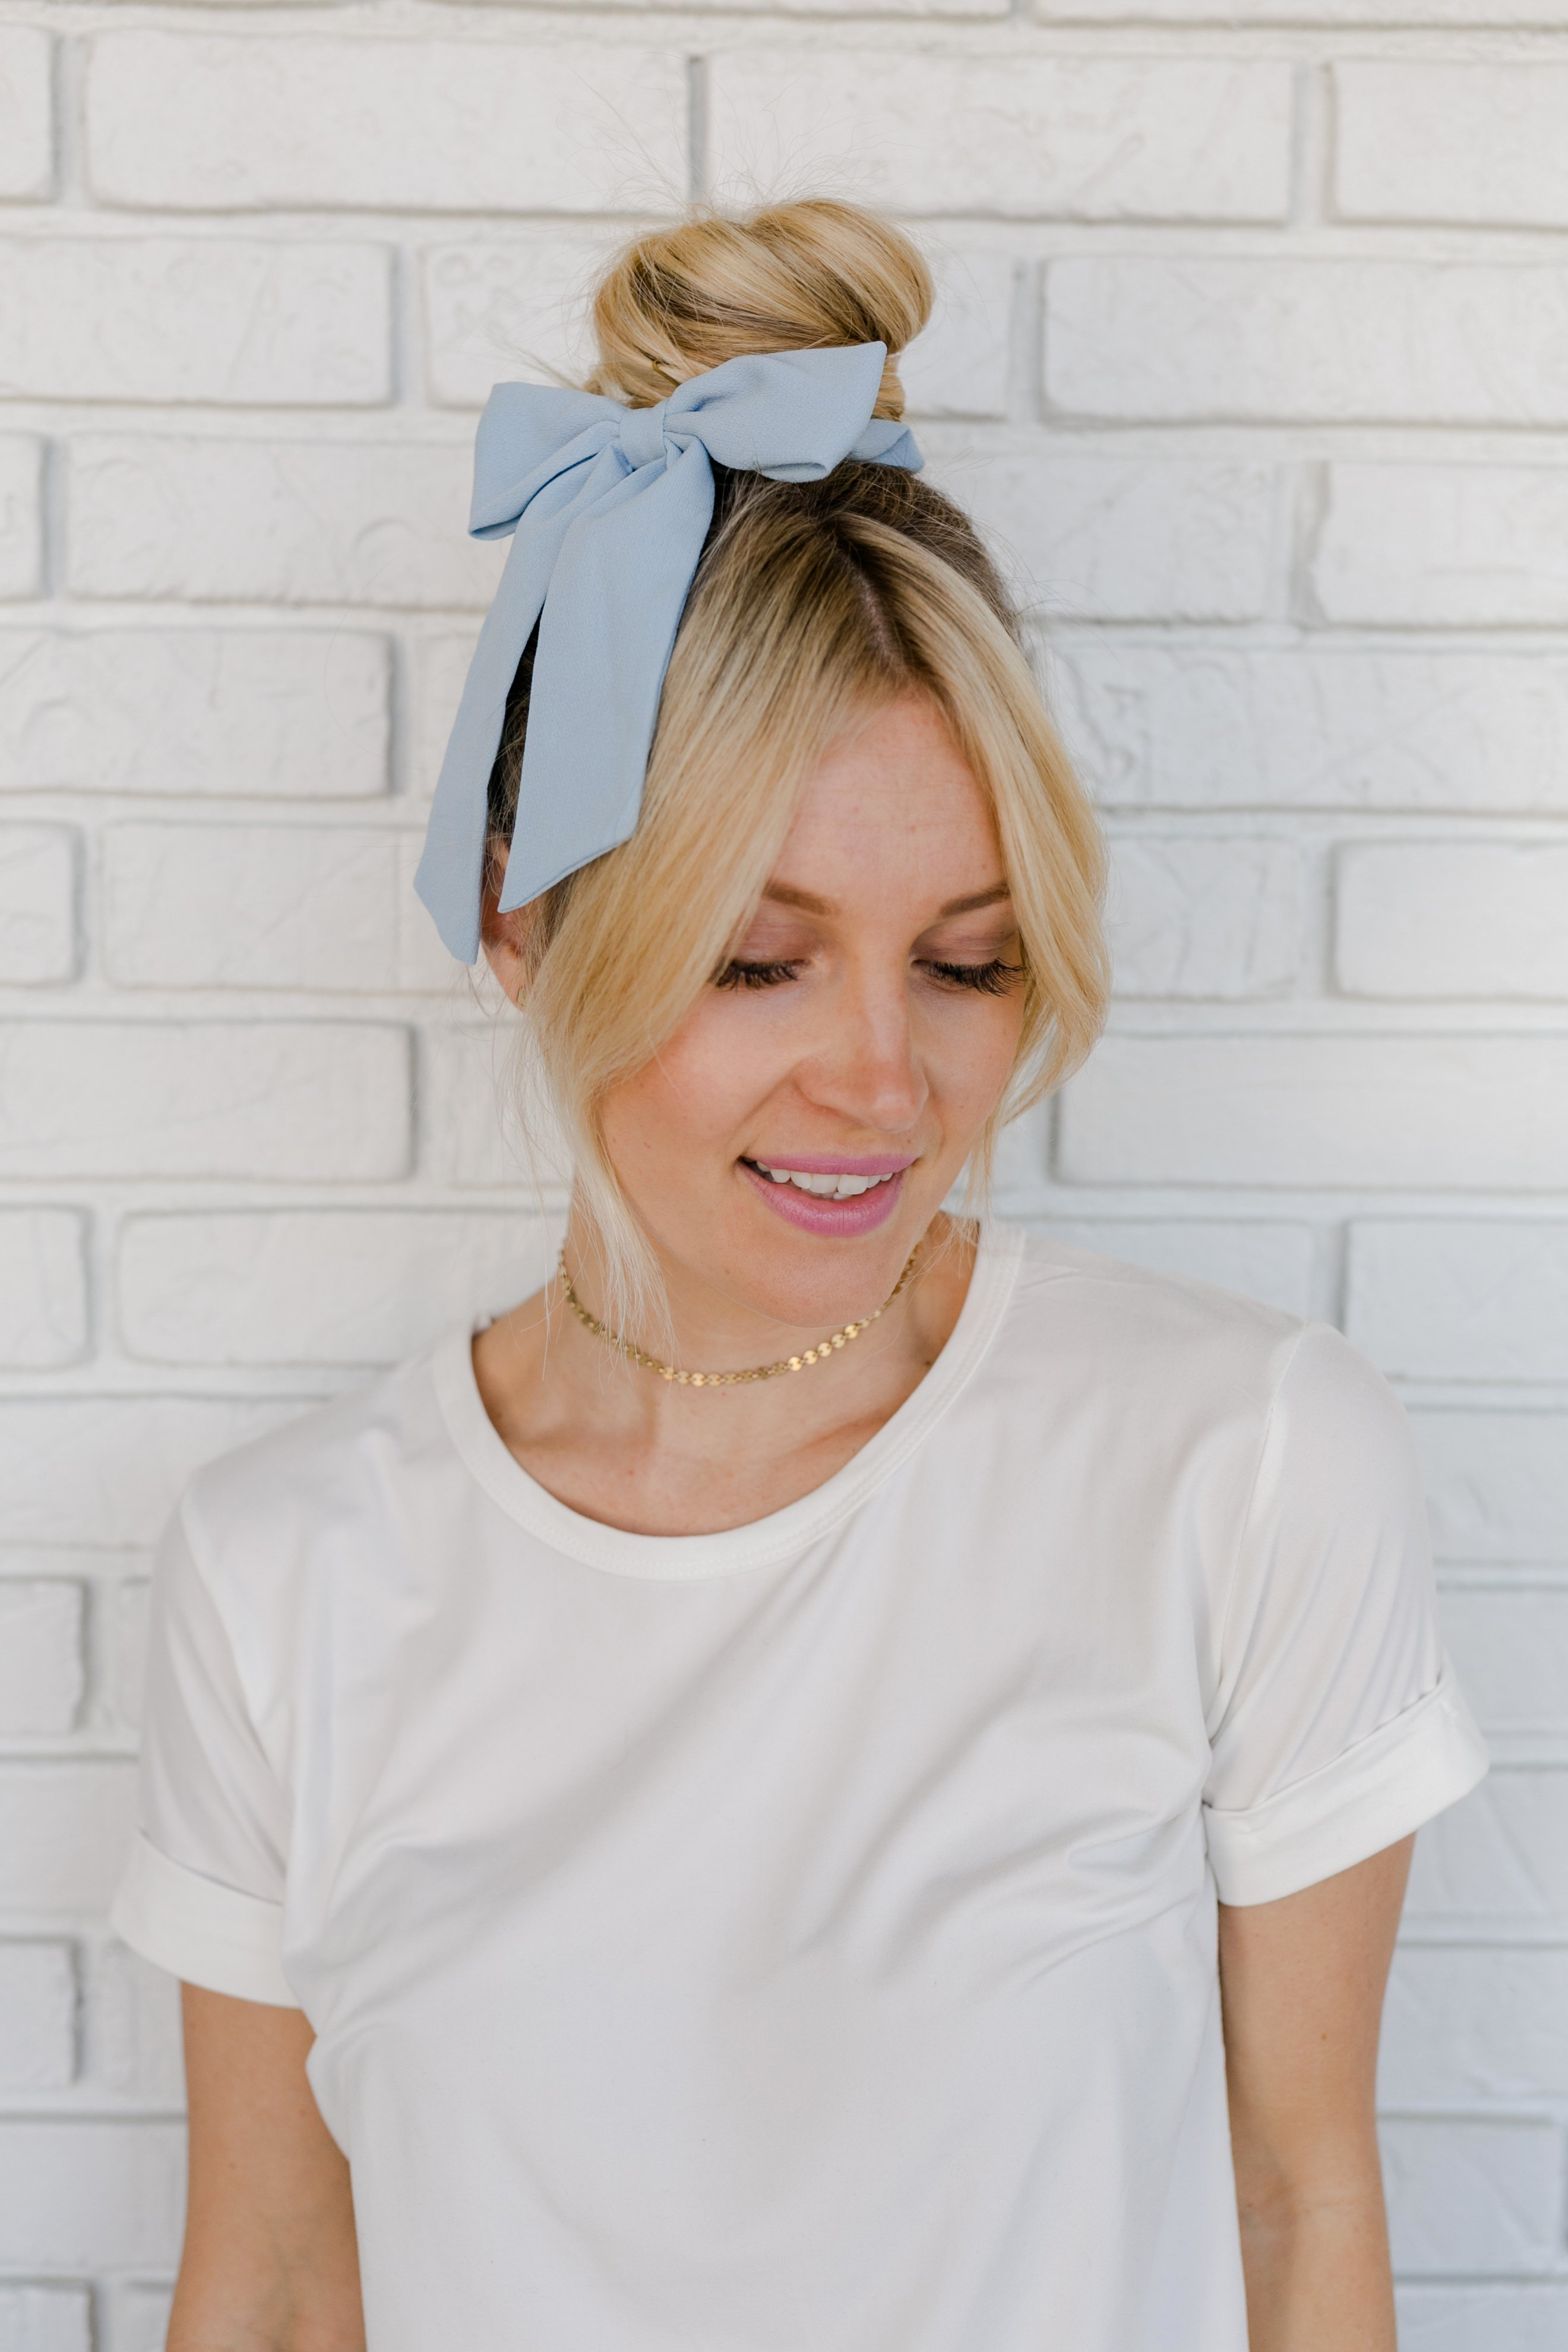 2debabc946b0 ... scrunchie trend that's been showing up over and over in your Pinterest  feed. You can even make your own scrunchie if you want to add some DIY  elements ...